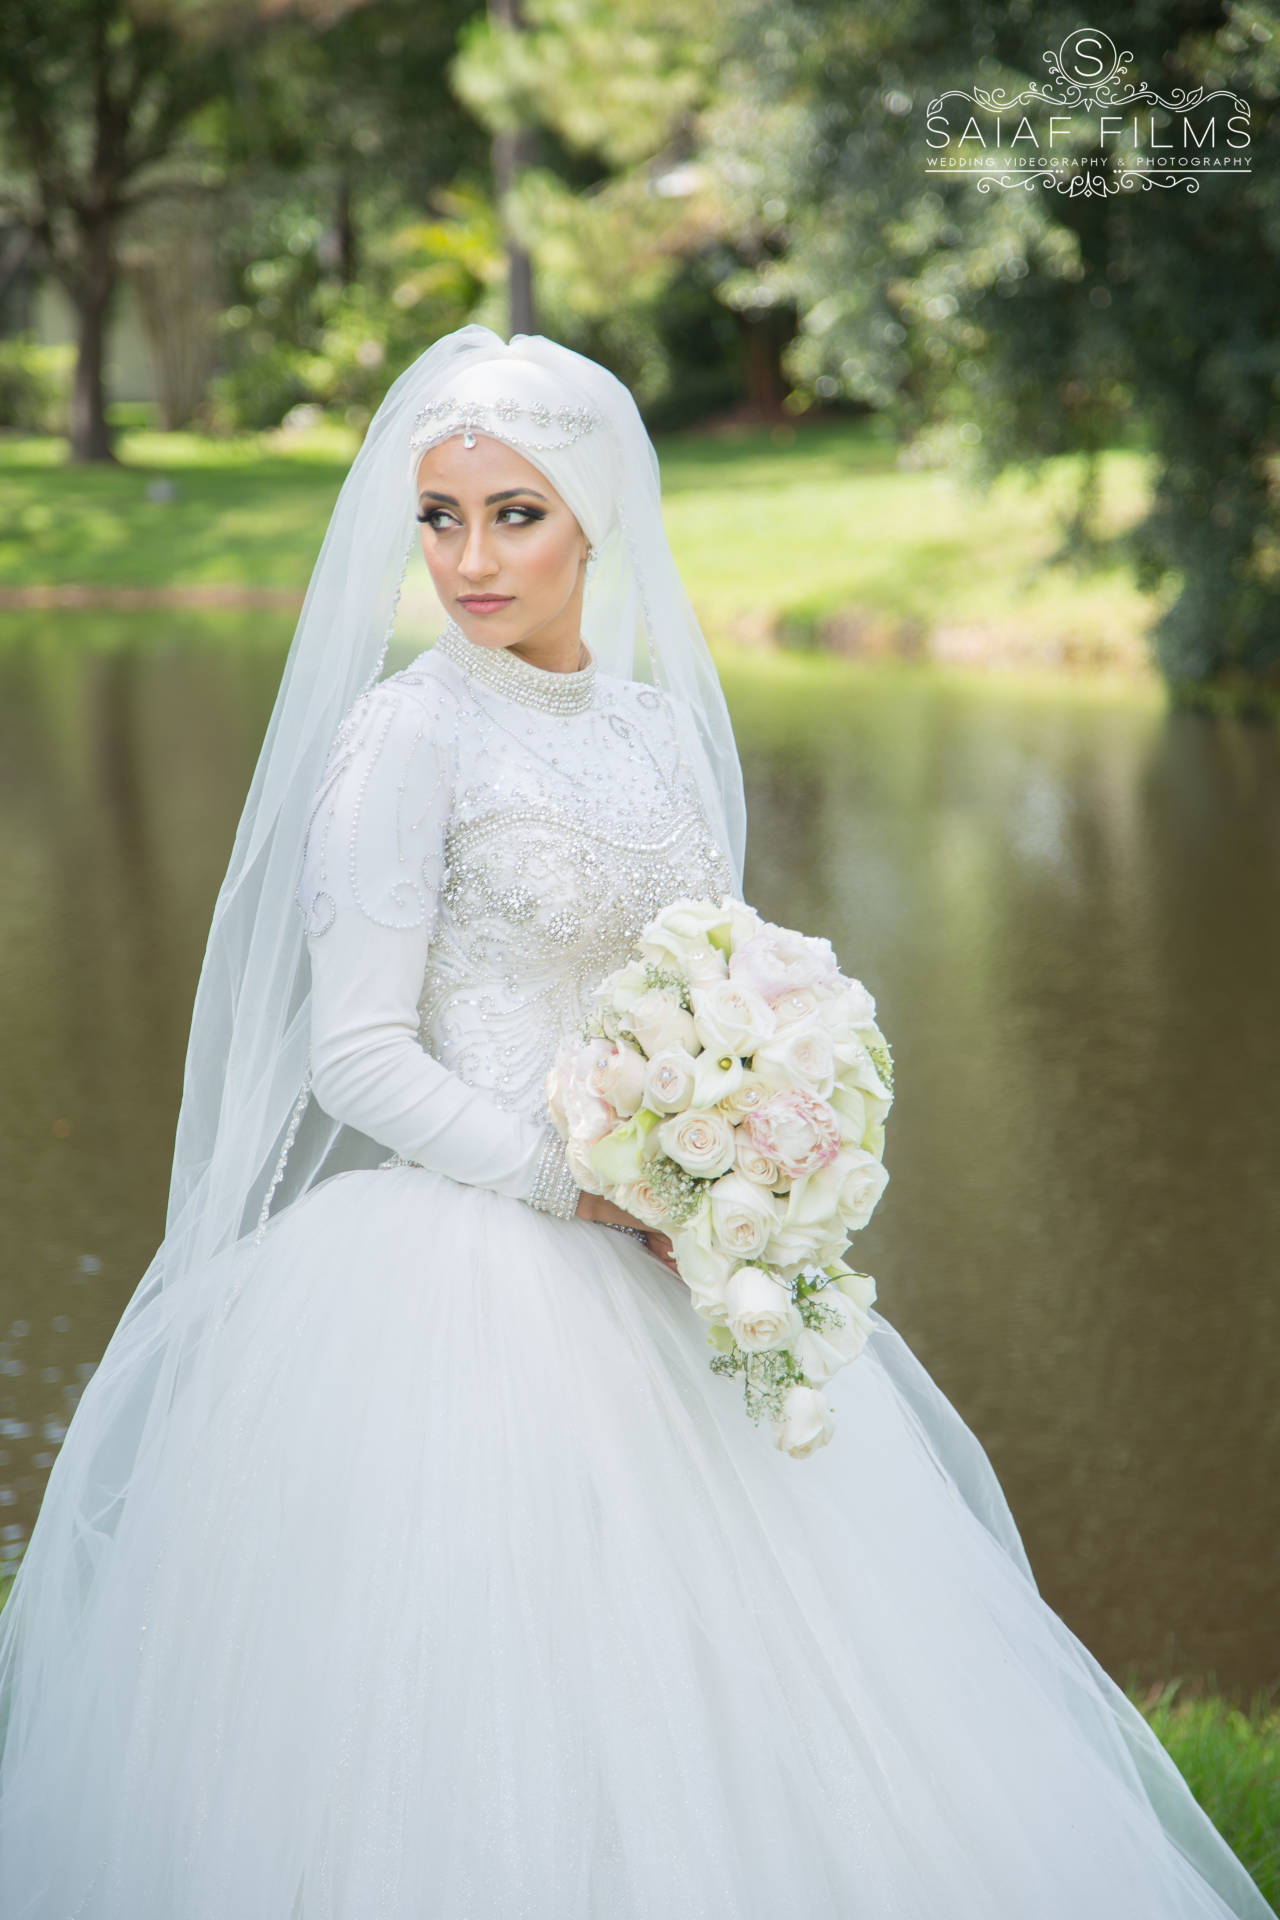 hm-wedding-raw6sd347-146